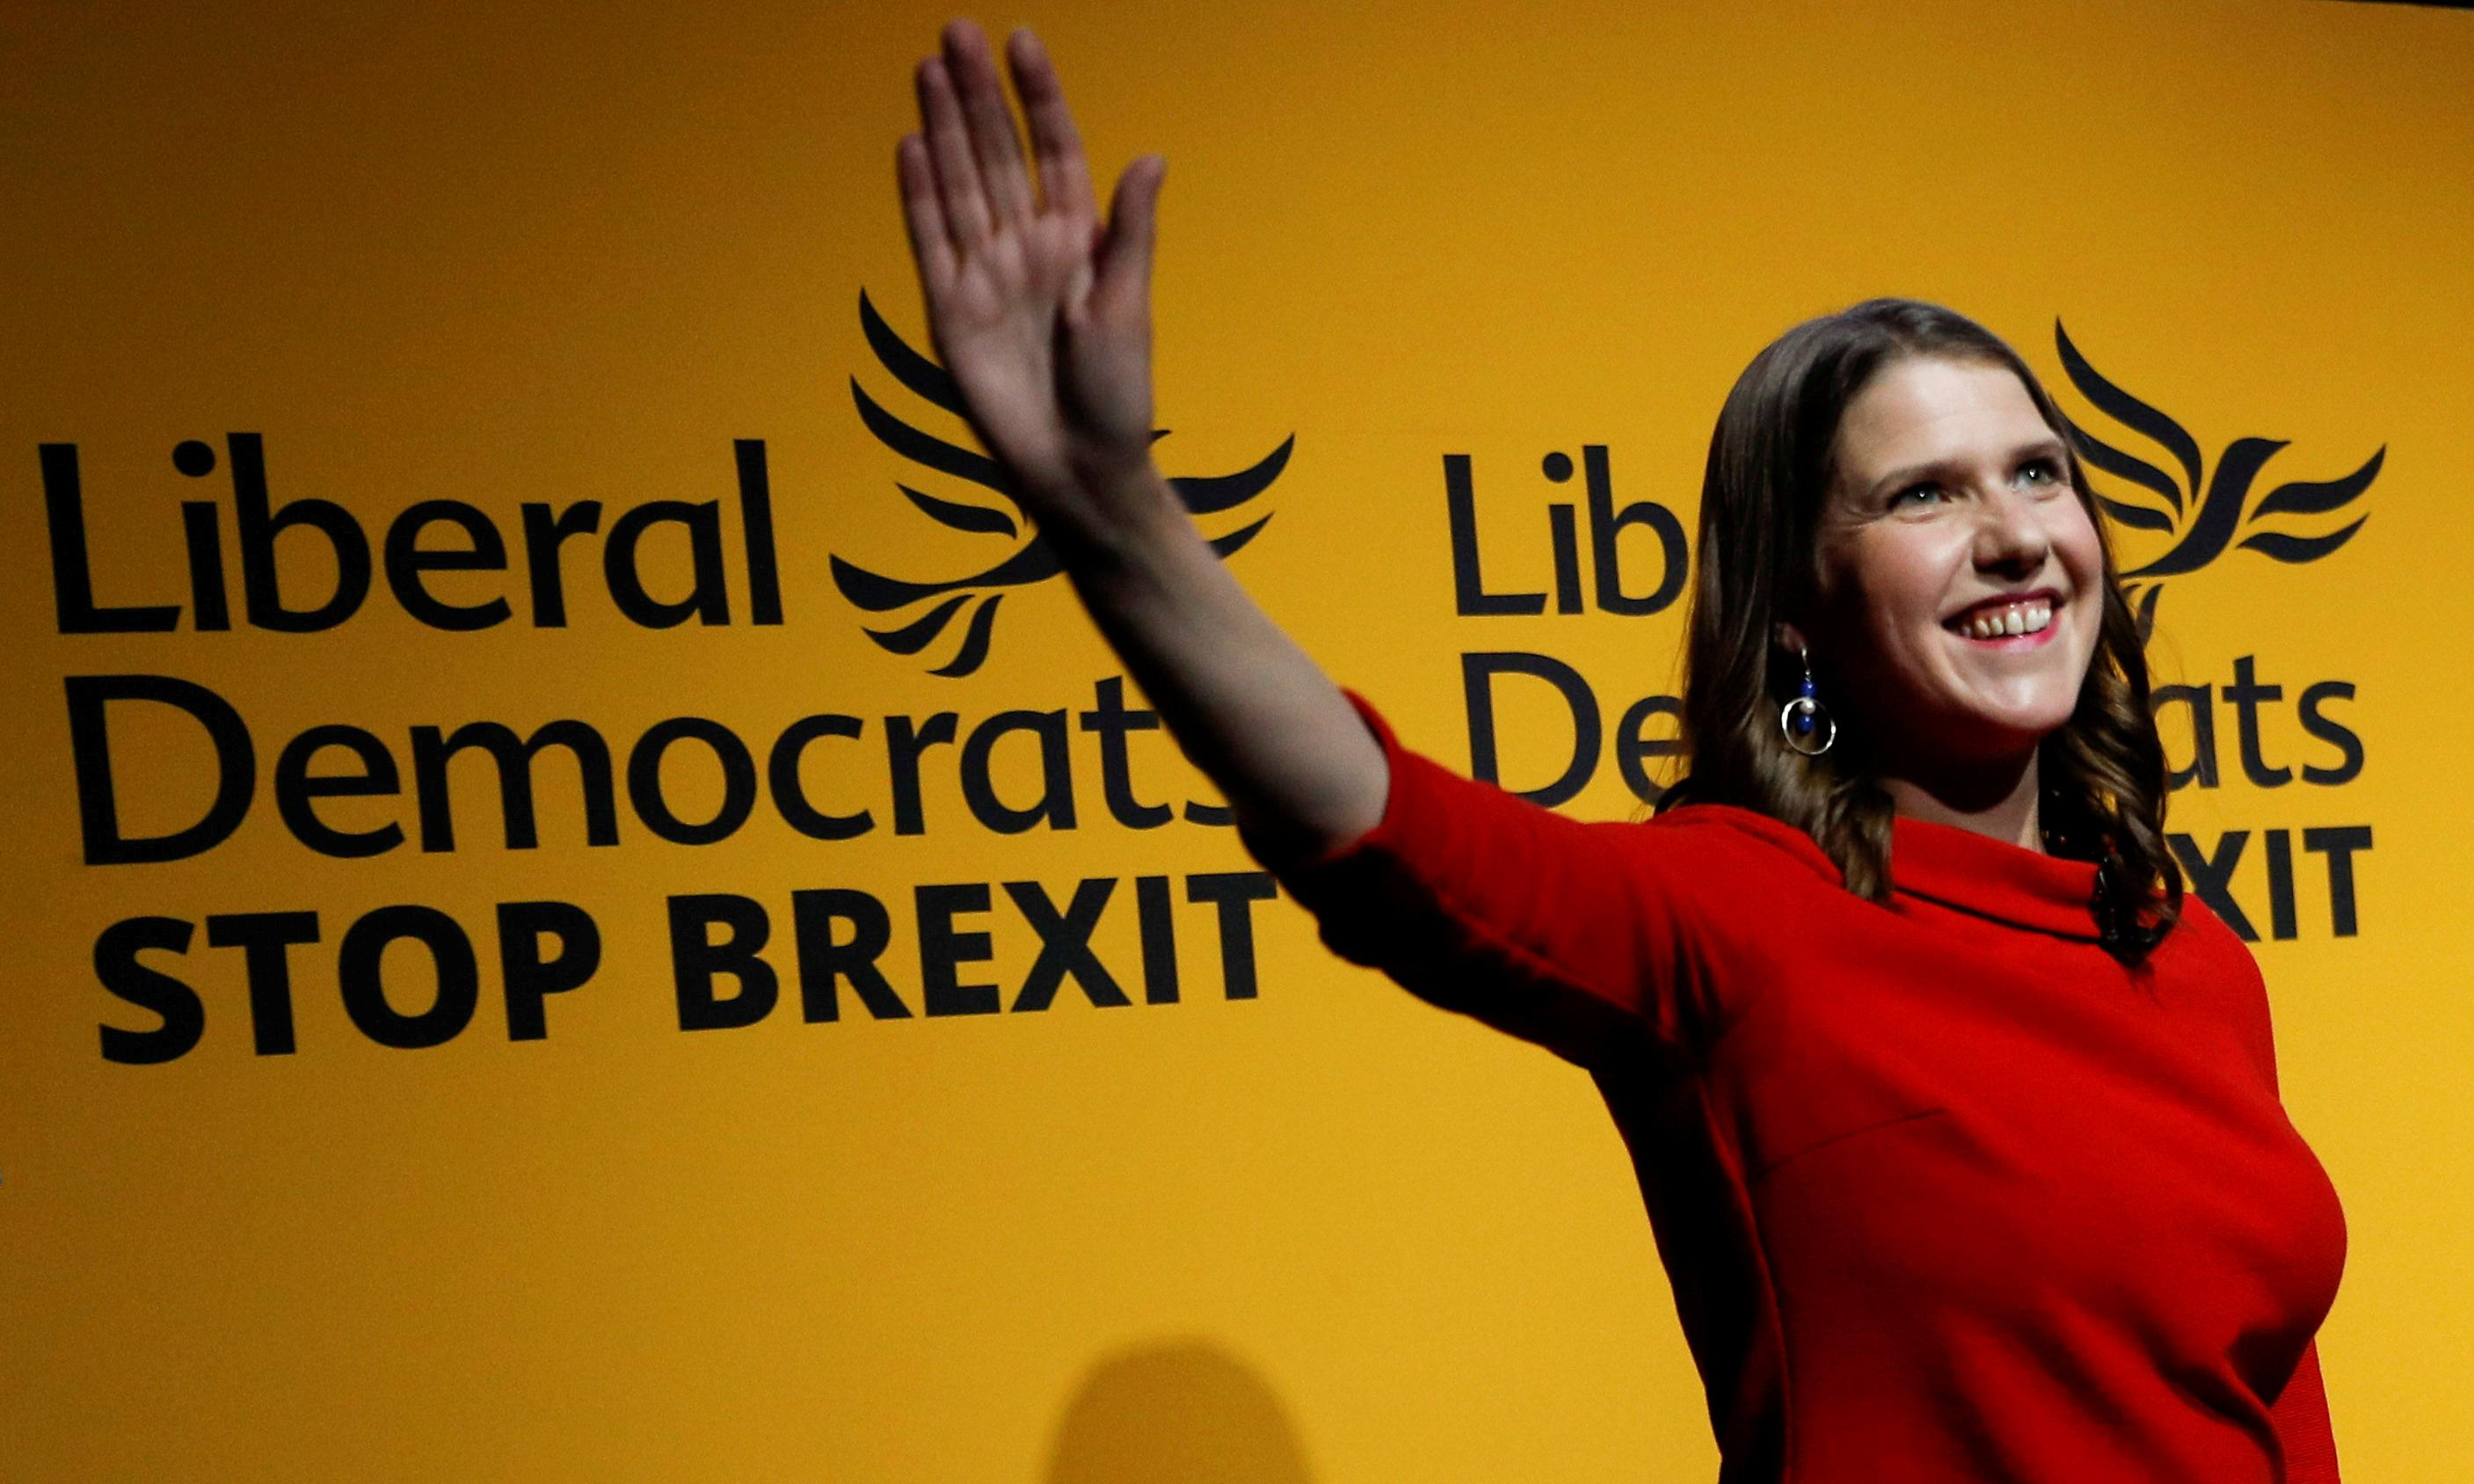 By dismissing Corbyn's overtures, the Lib Dems are showing their true colours